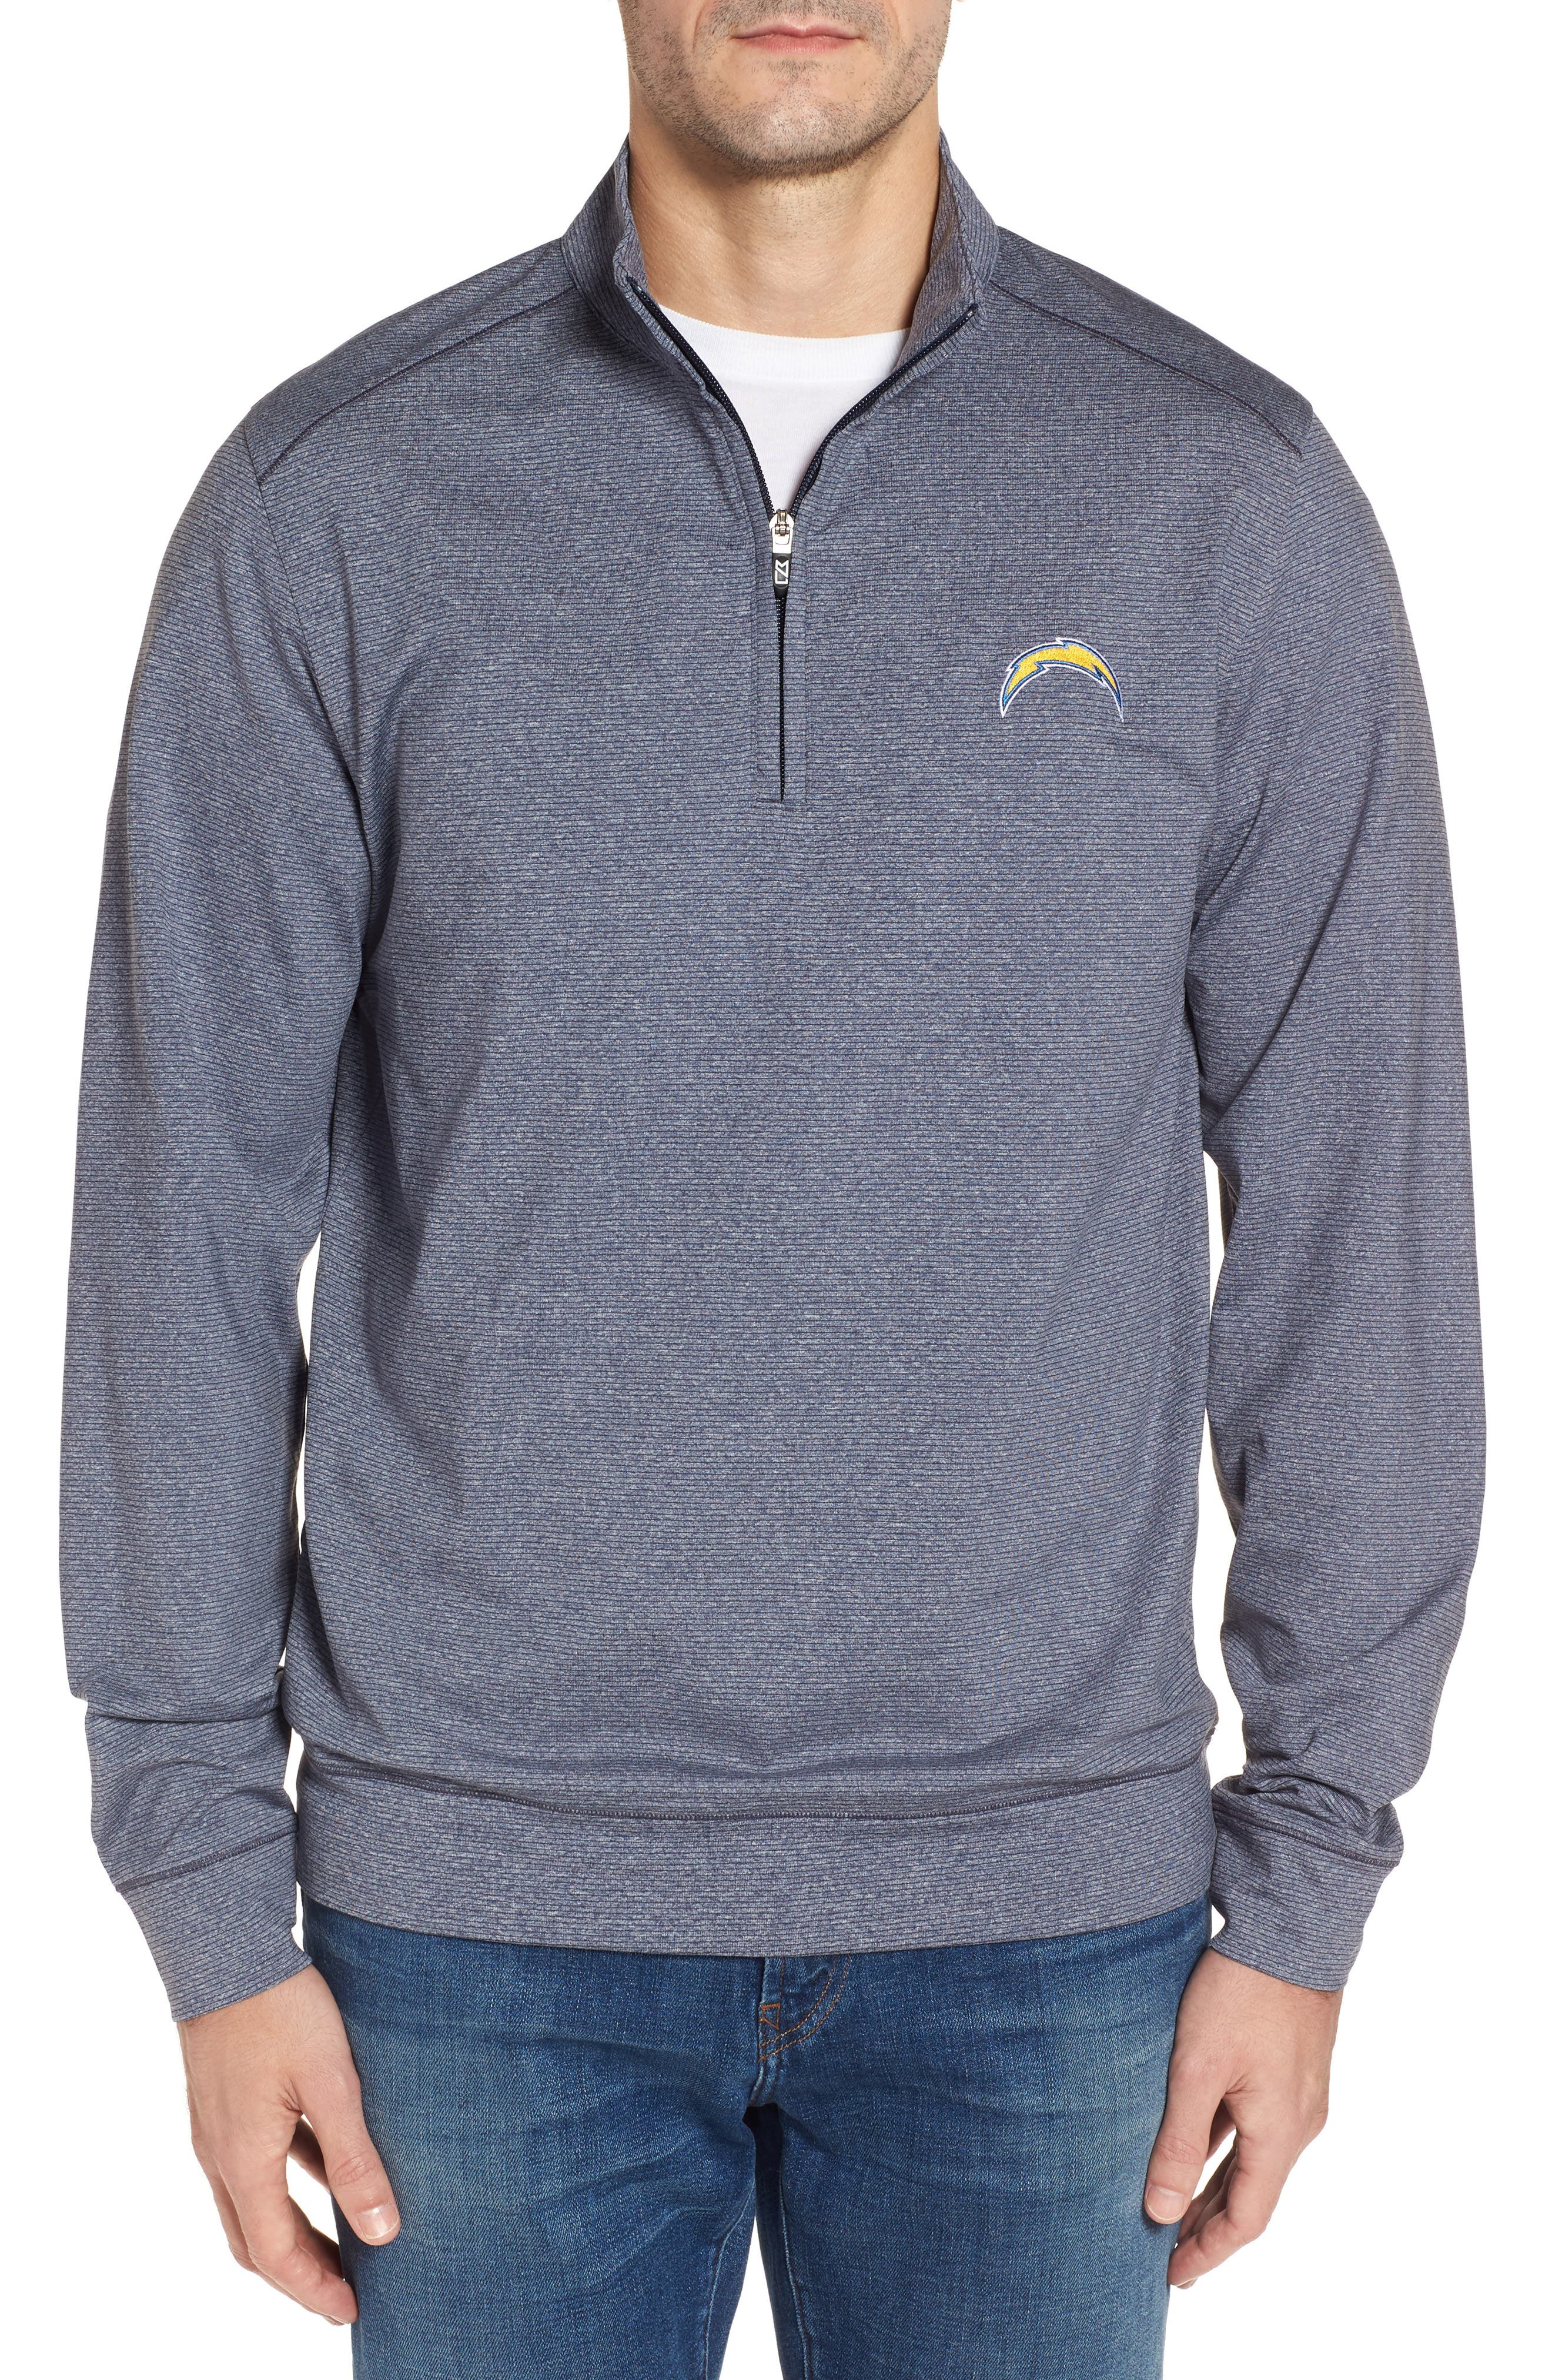 Chargers Shoreline Quarter Zip Pullover,                         Main,                         color, 476